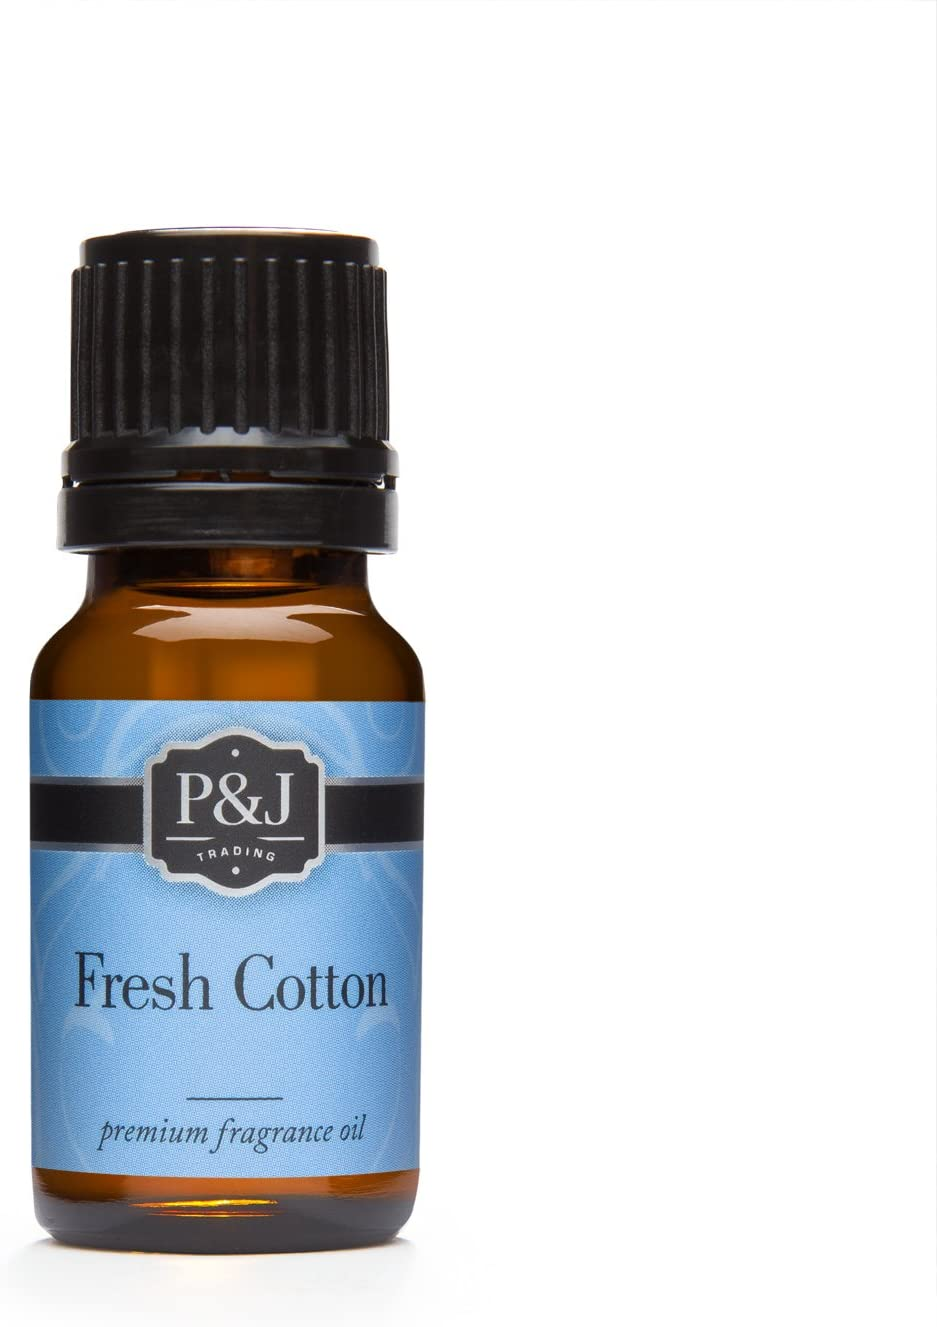 Fresh Cotton Premium Grade Fragrance Oil - Perfume Oil - 10ml